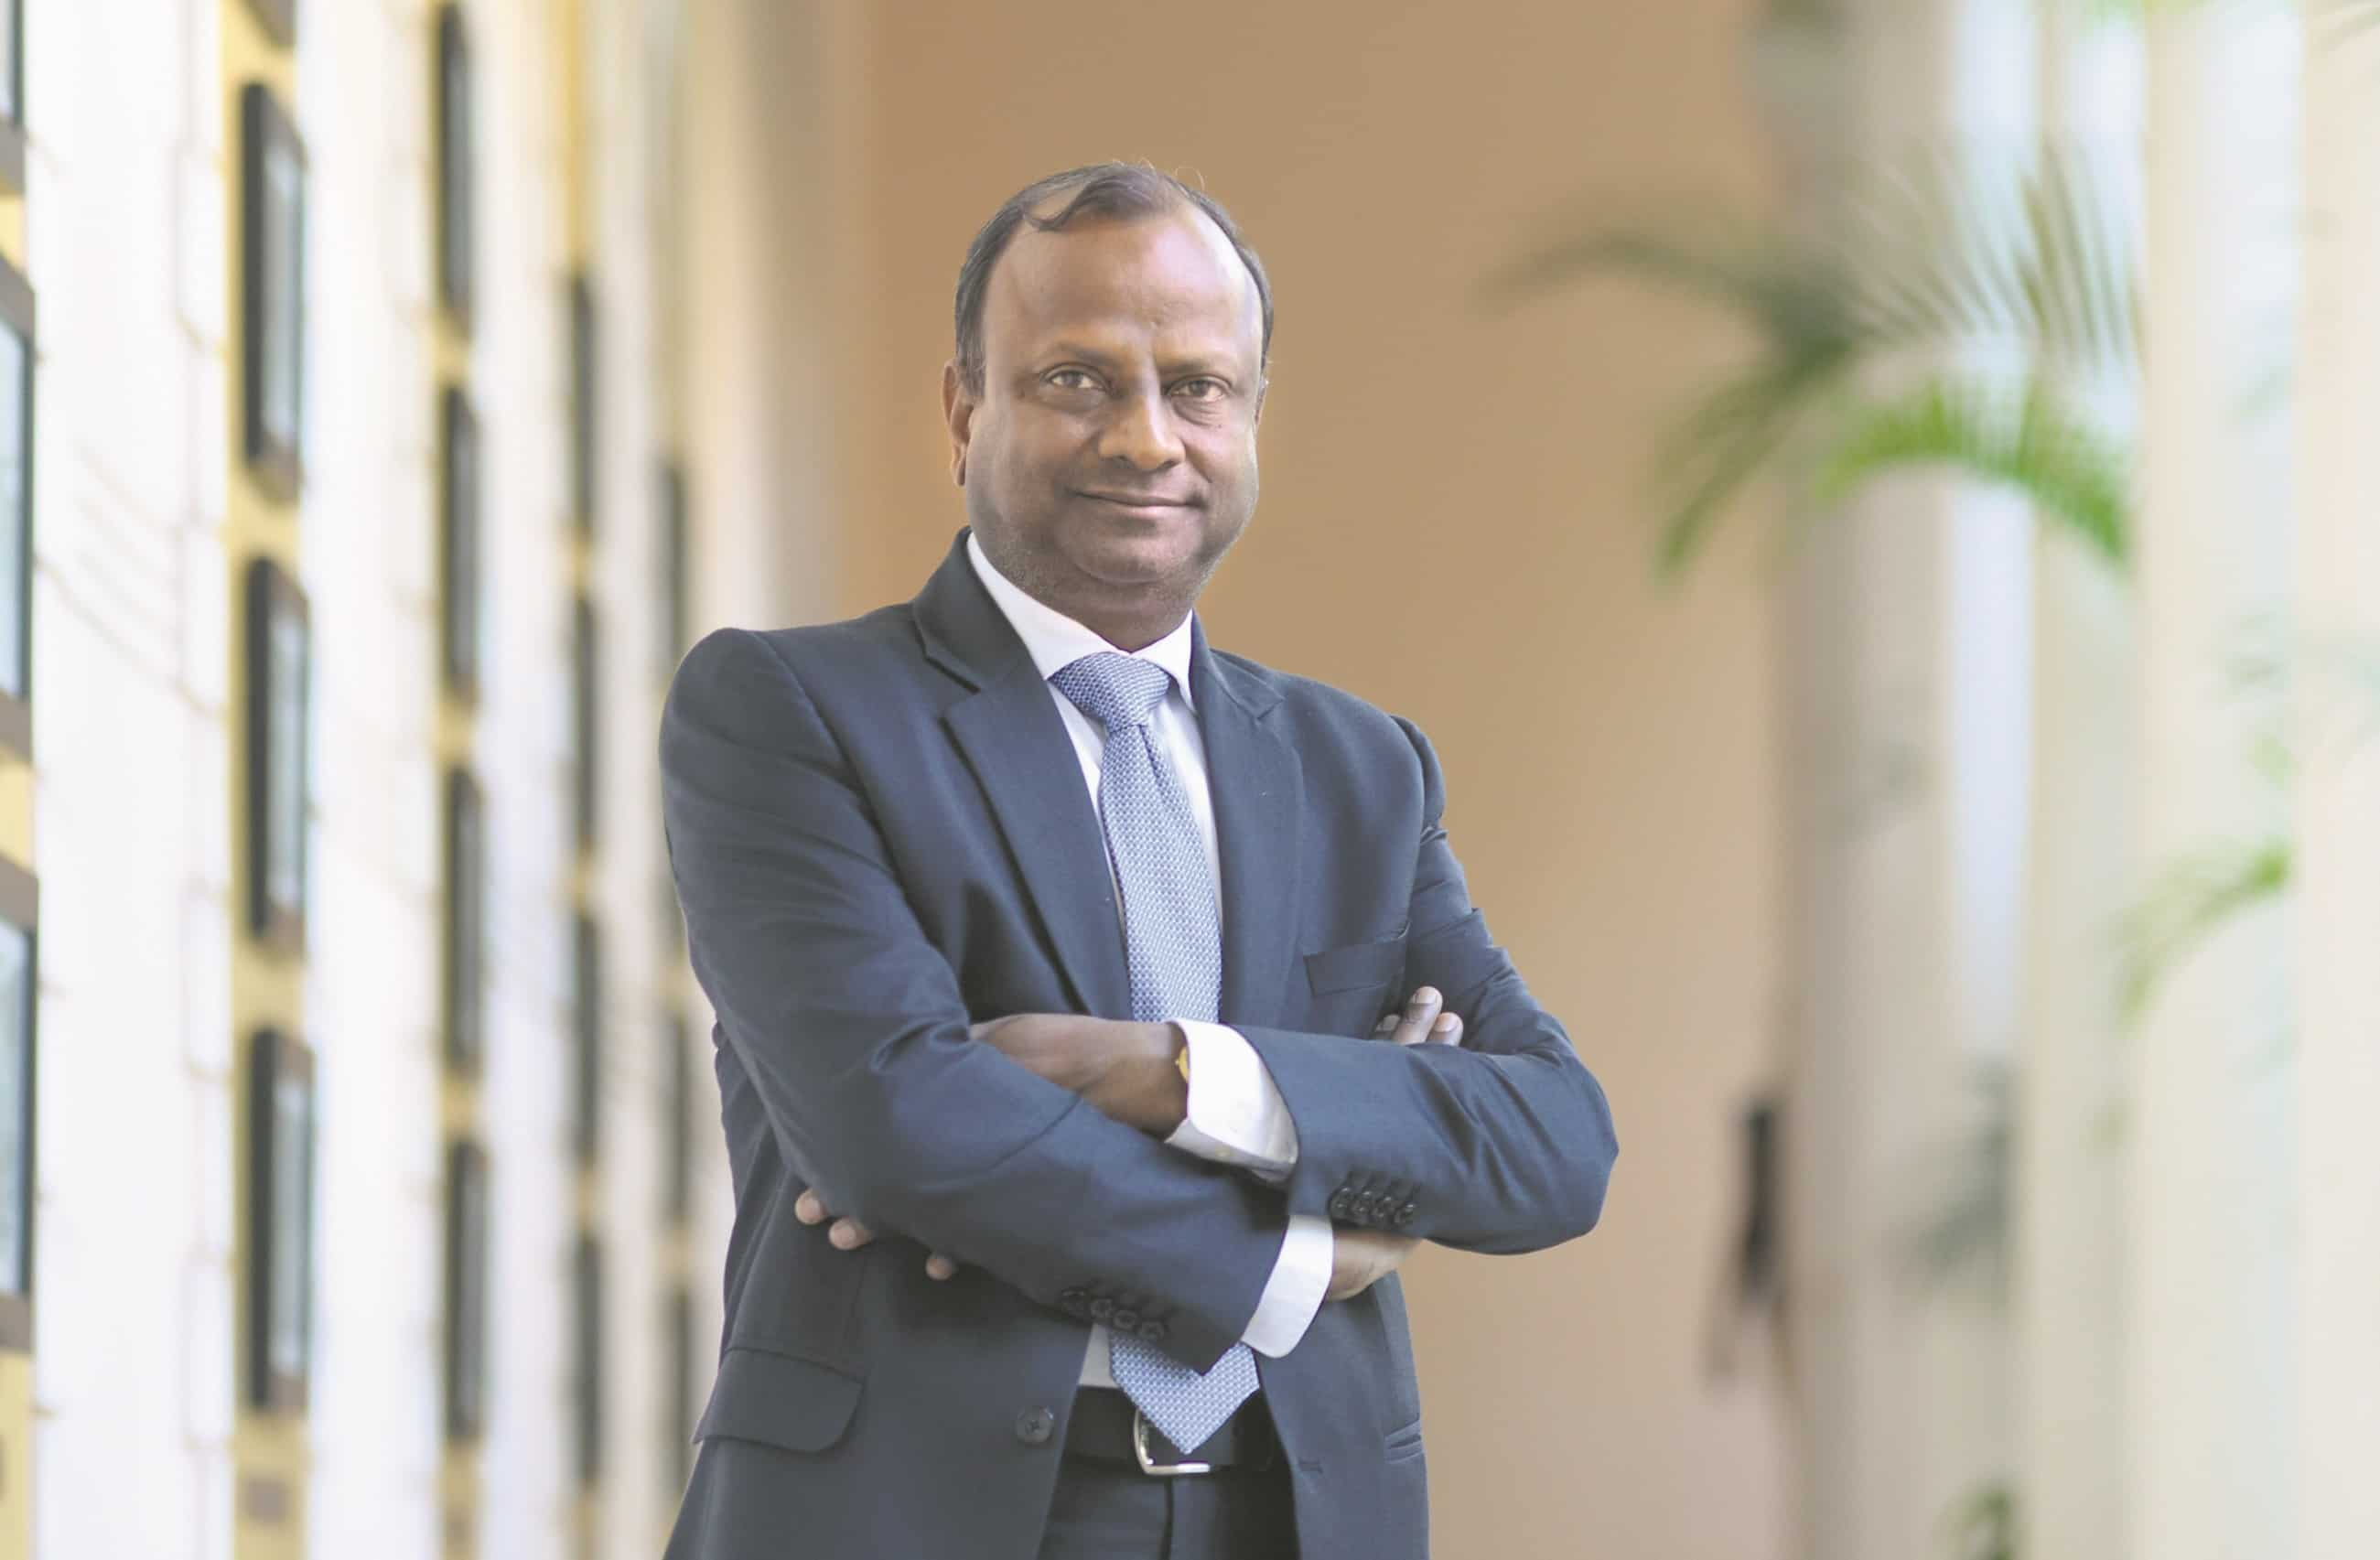 A file photo of Rajnish Kumar, chairman, SBI